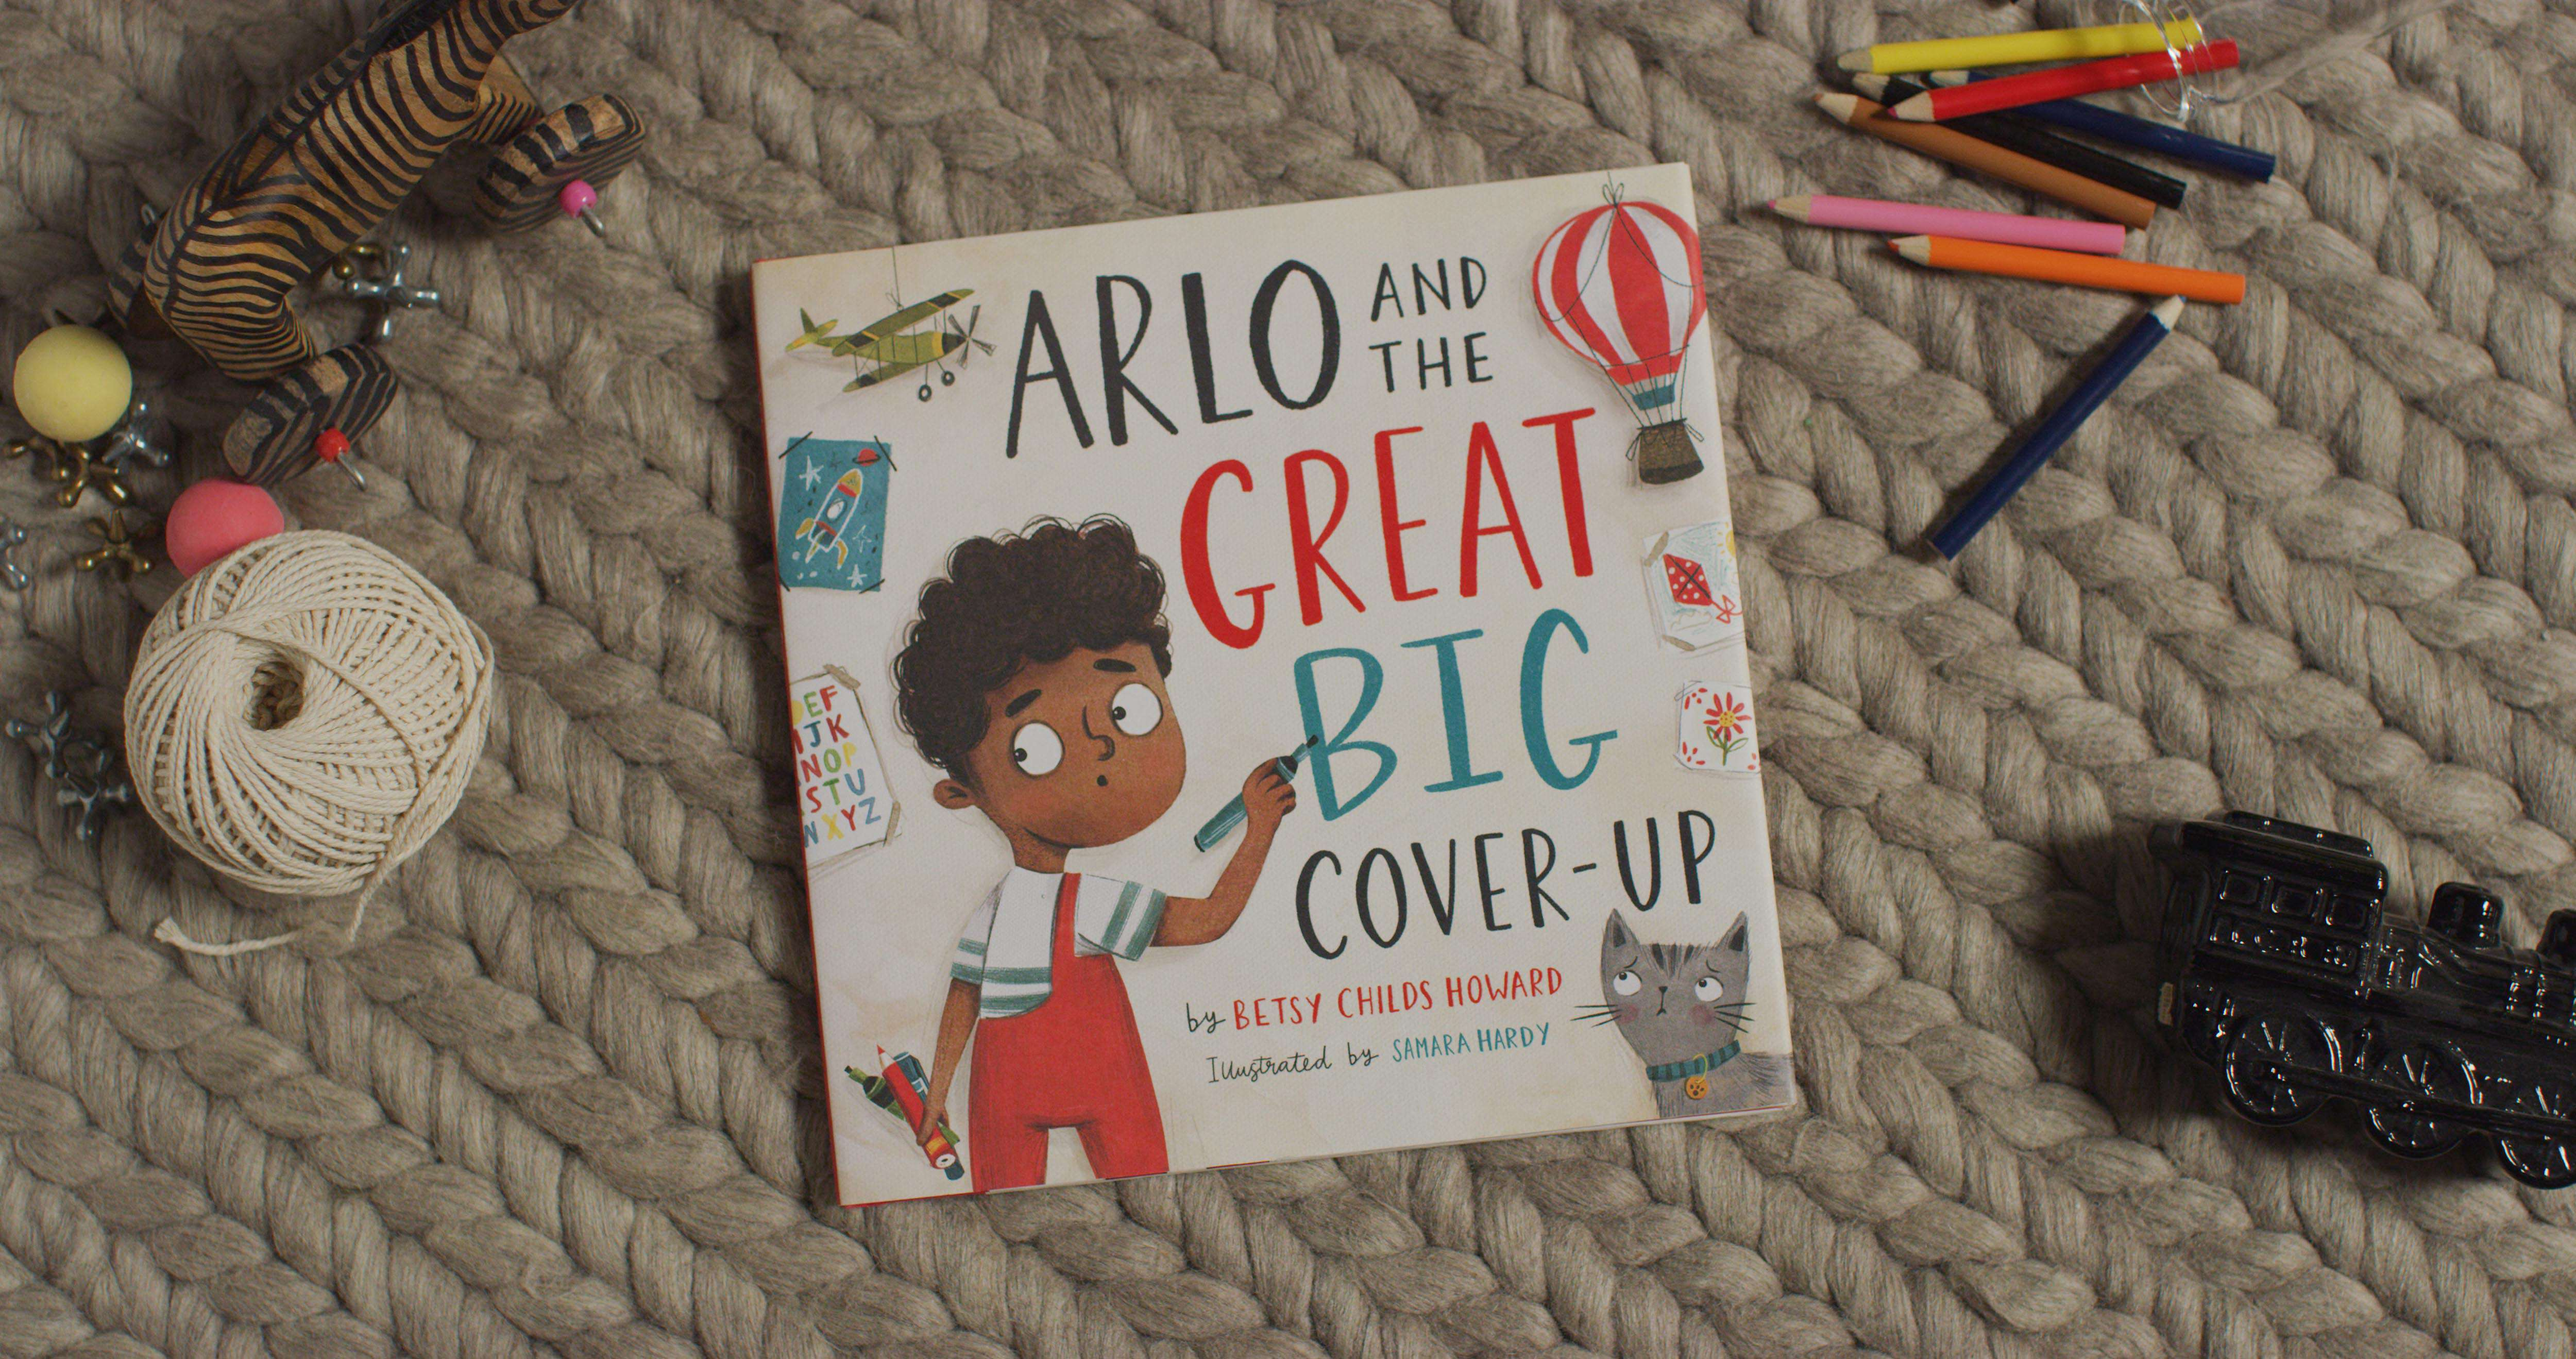 'Arlo and the Great Big Cover-Up' by Betsy Childs Howard